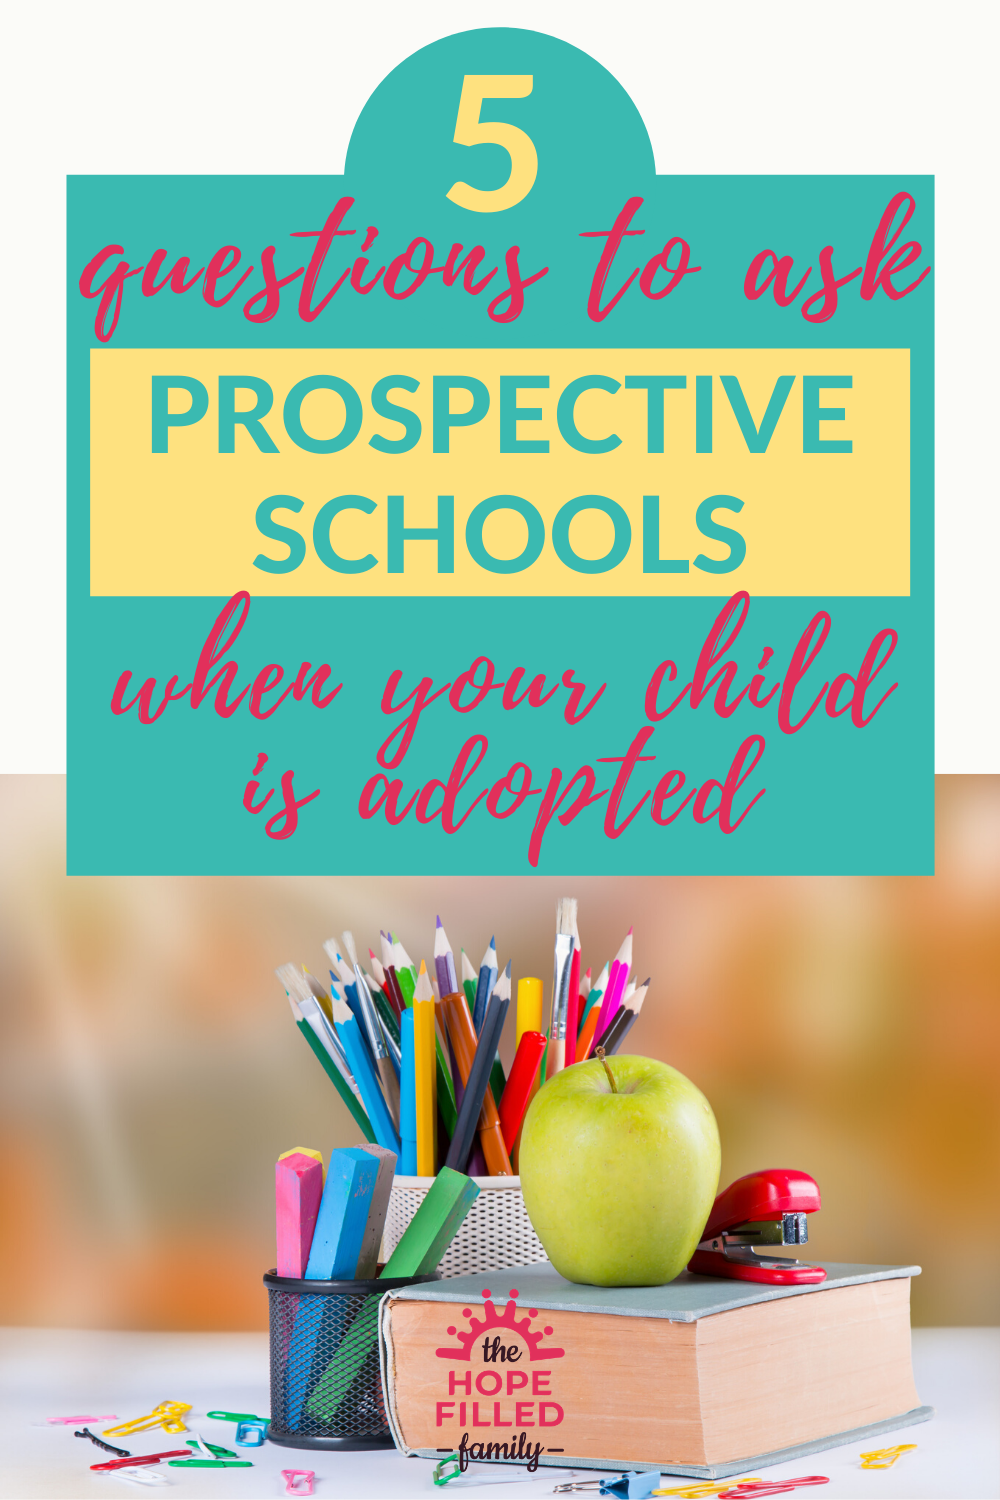 Looking round prospective schools with your adopted or fostered child? Here are the questions you need to ask.